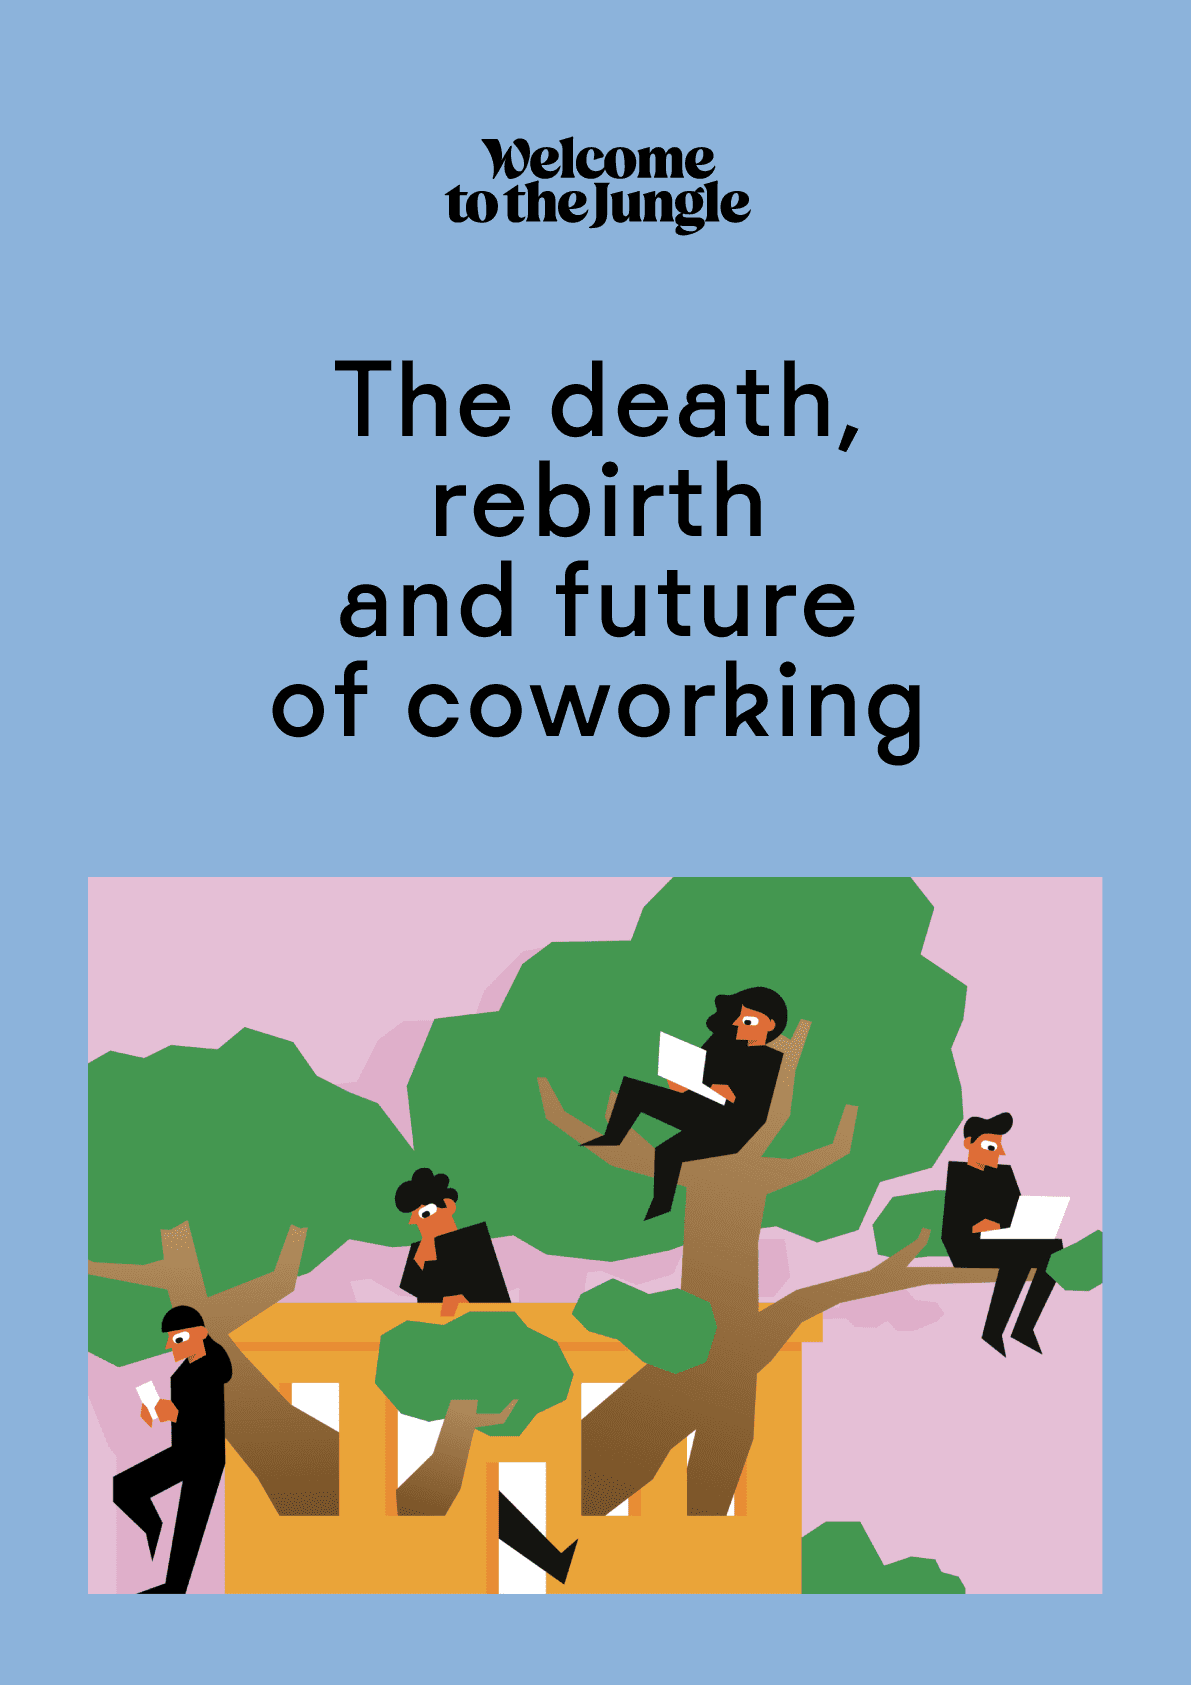 The death, rebirth and future of coworking